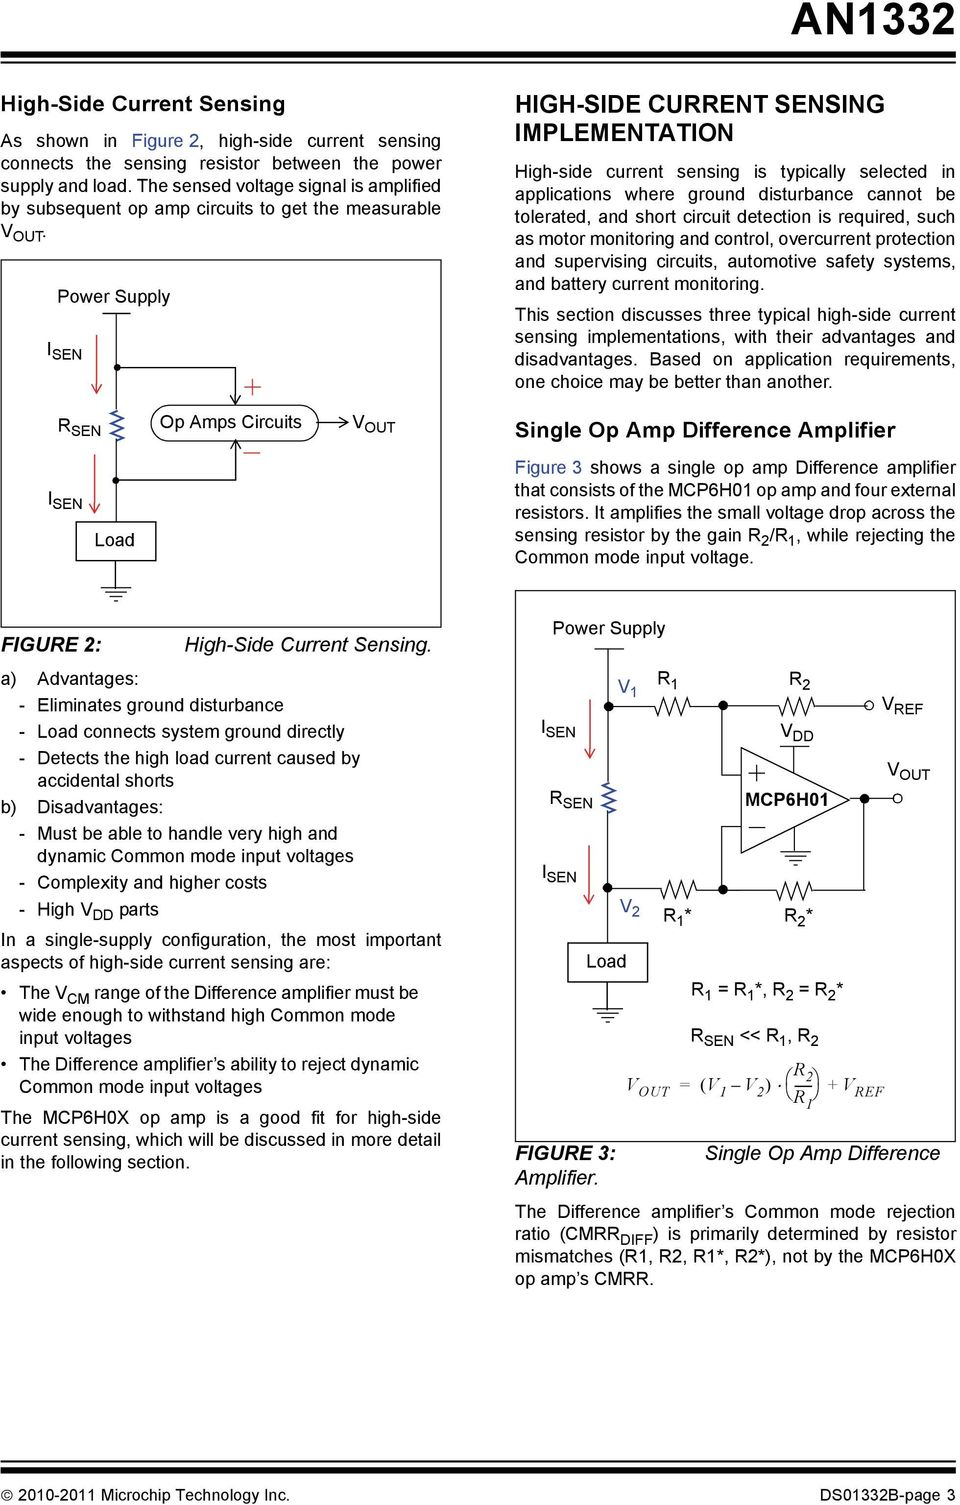 An1332 Current Sensing Circuit Concepts And Fundamentals The Is Determined By Formula Out V Vref R2 Power Supply Hih Side Sensin Implementation High Typically Selected